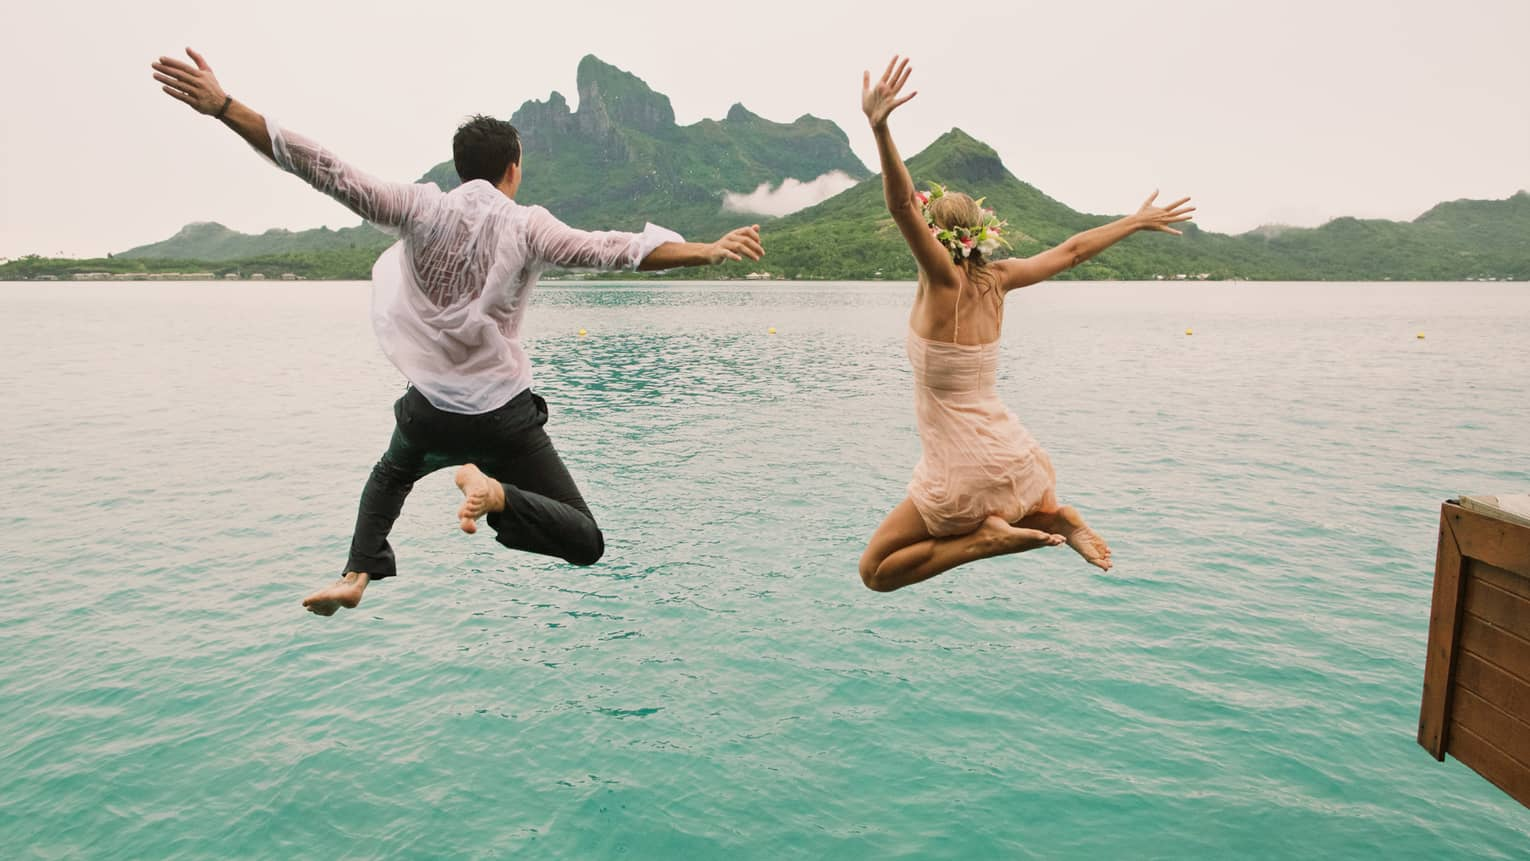 Woman and man in mid jump into turquoise lagoon